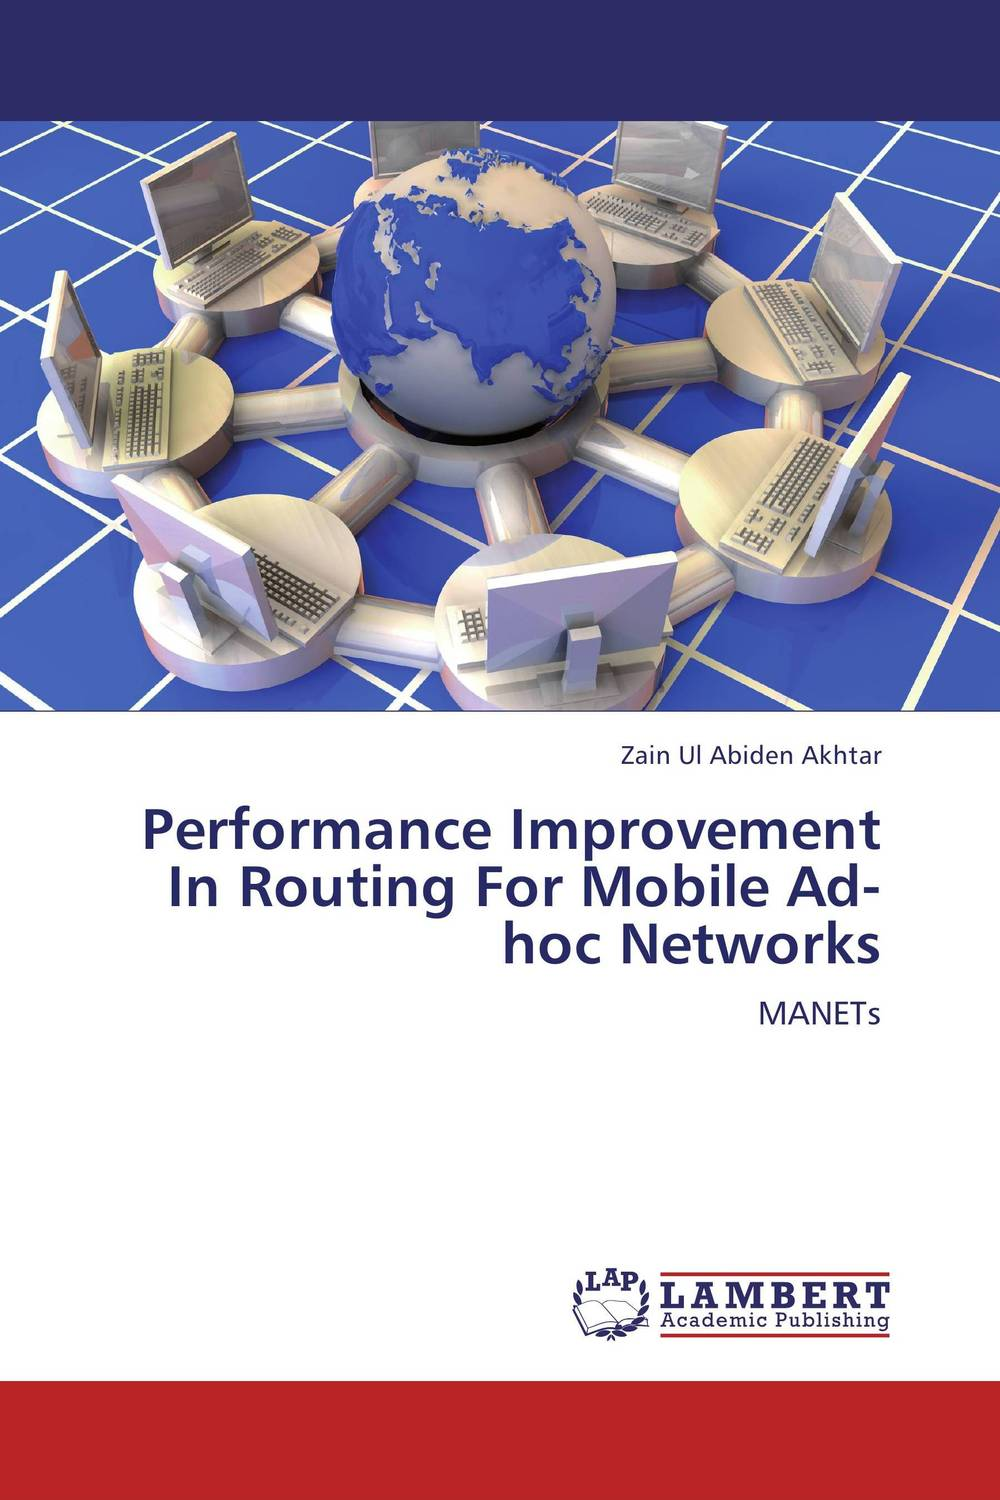 Performance Improvement In Routing For Mobile Ad-hoc Networks kk 517 панно коты на ветке шамот